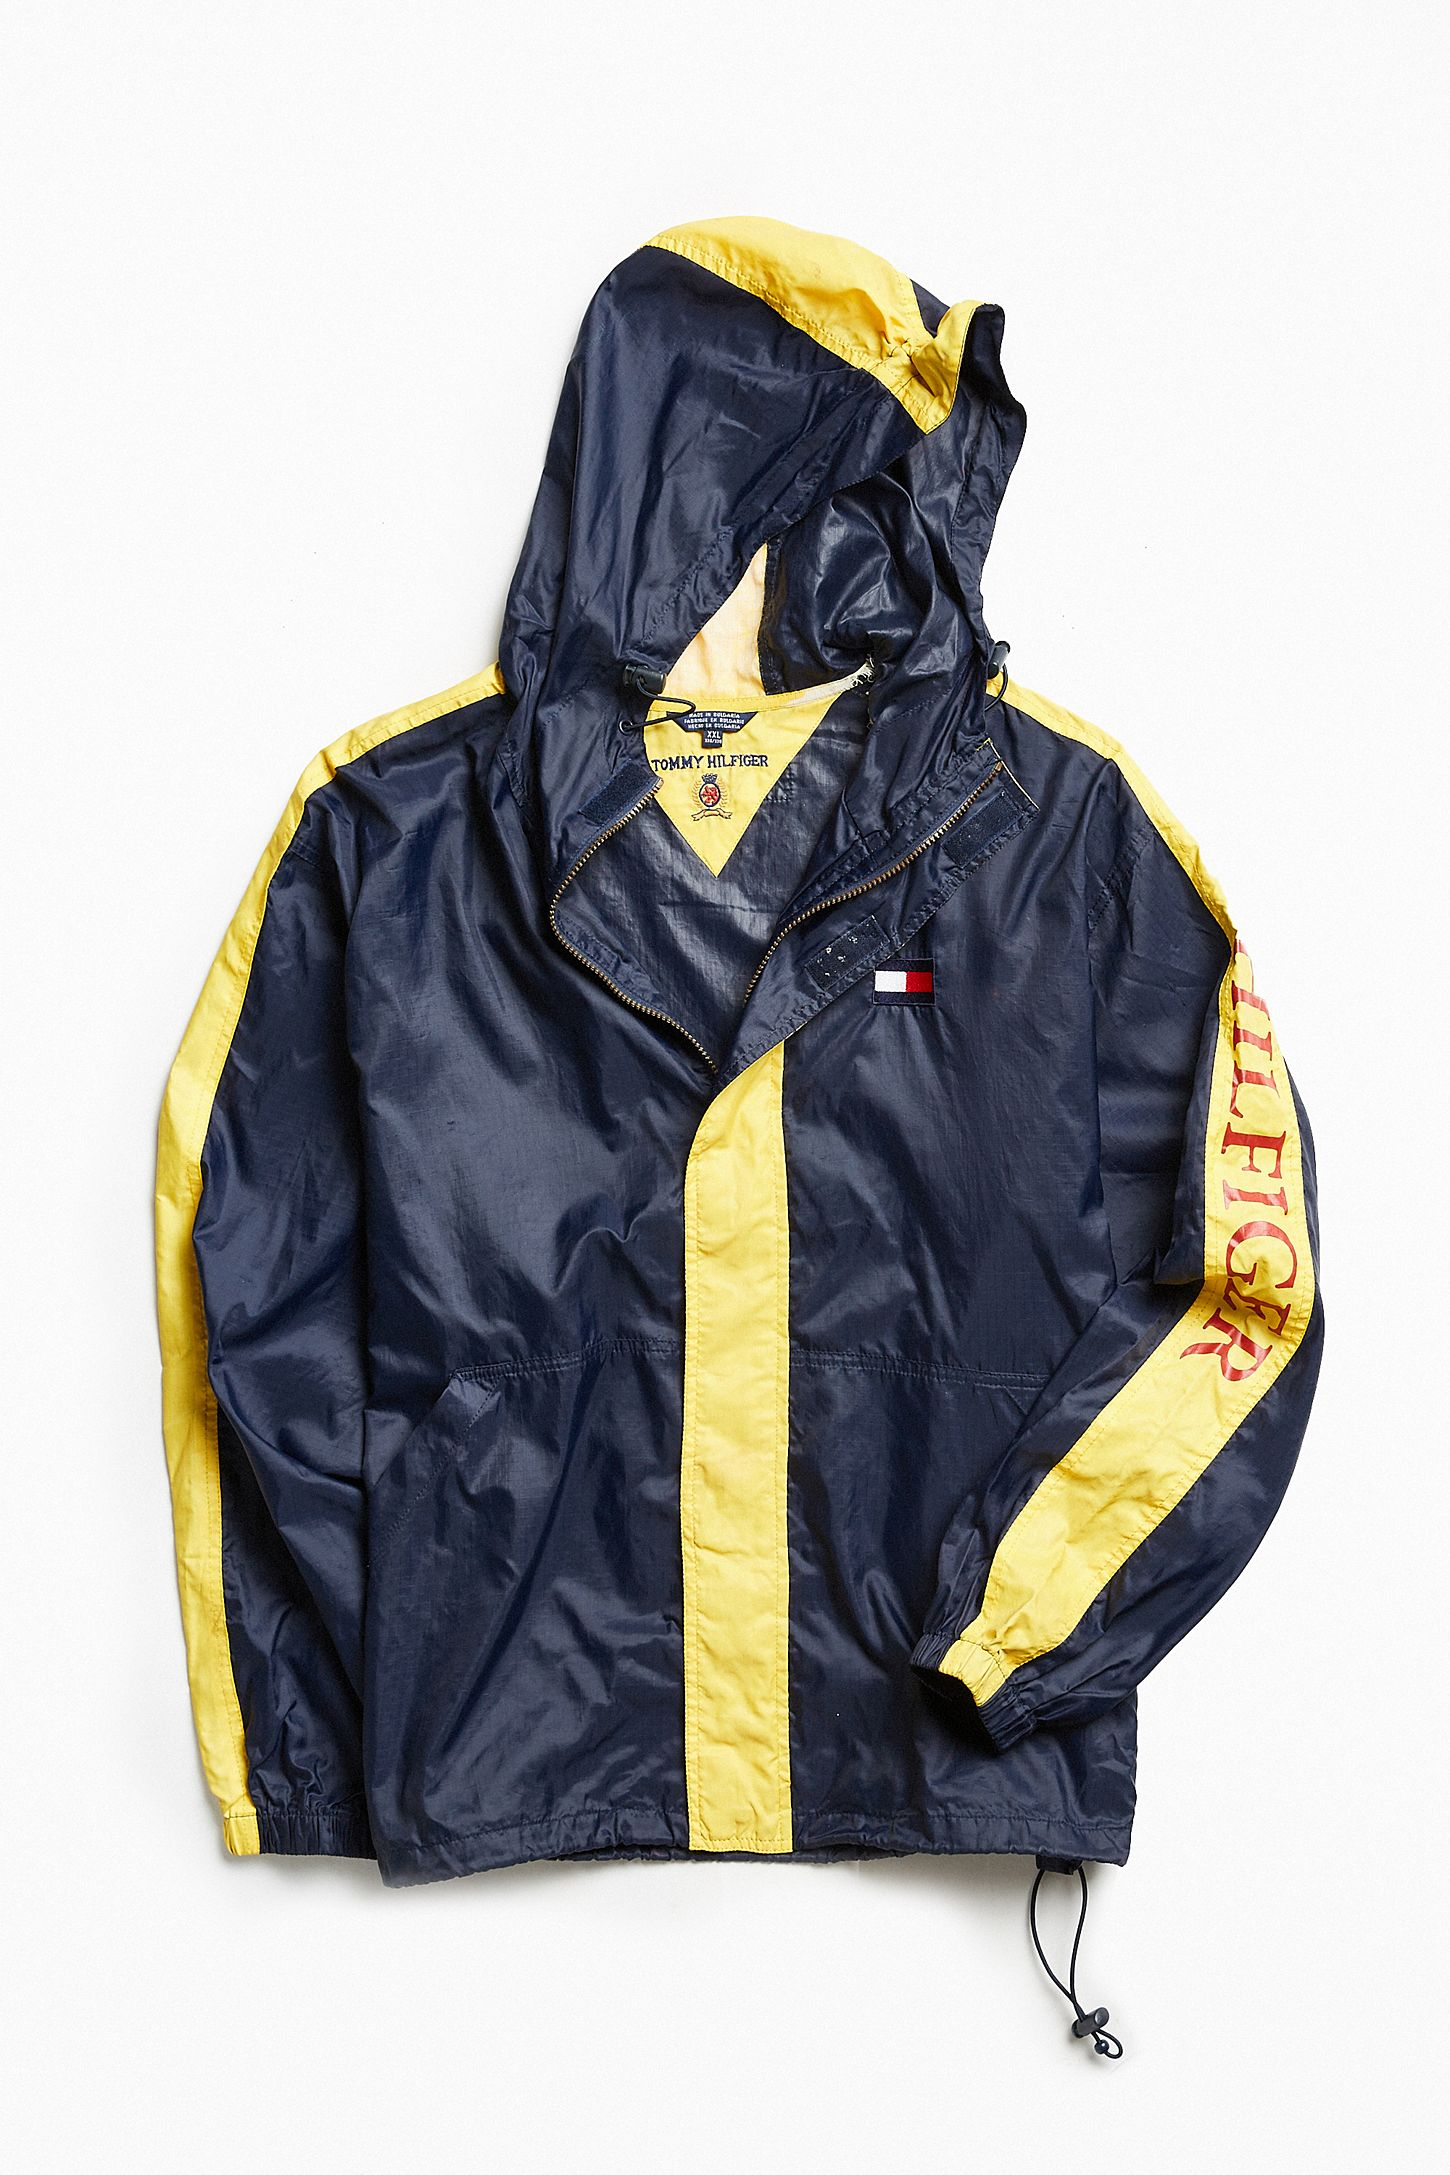 f35010b2 Vintage Tommy Hilfiger Navy + Yellow '90s Prep Sport Windbreaker Jacket.  Tap image to zoom. Hover to zoom. Double Tap to Zoom